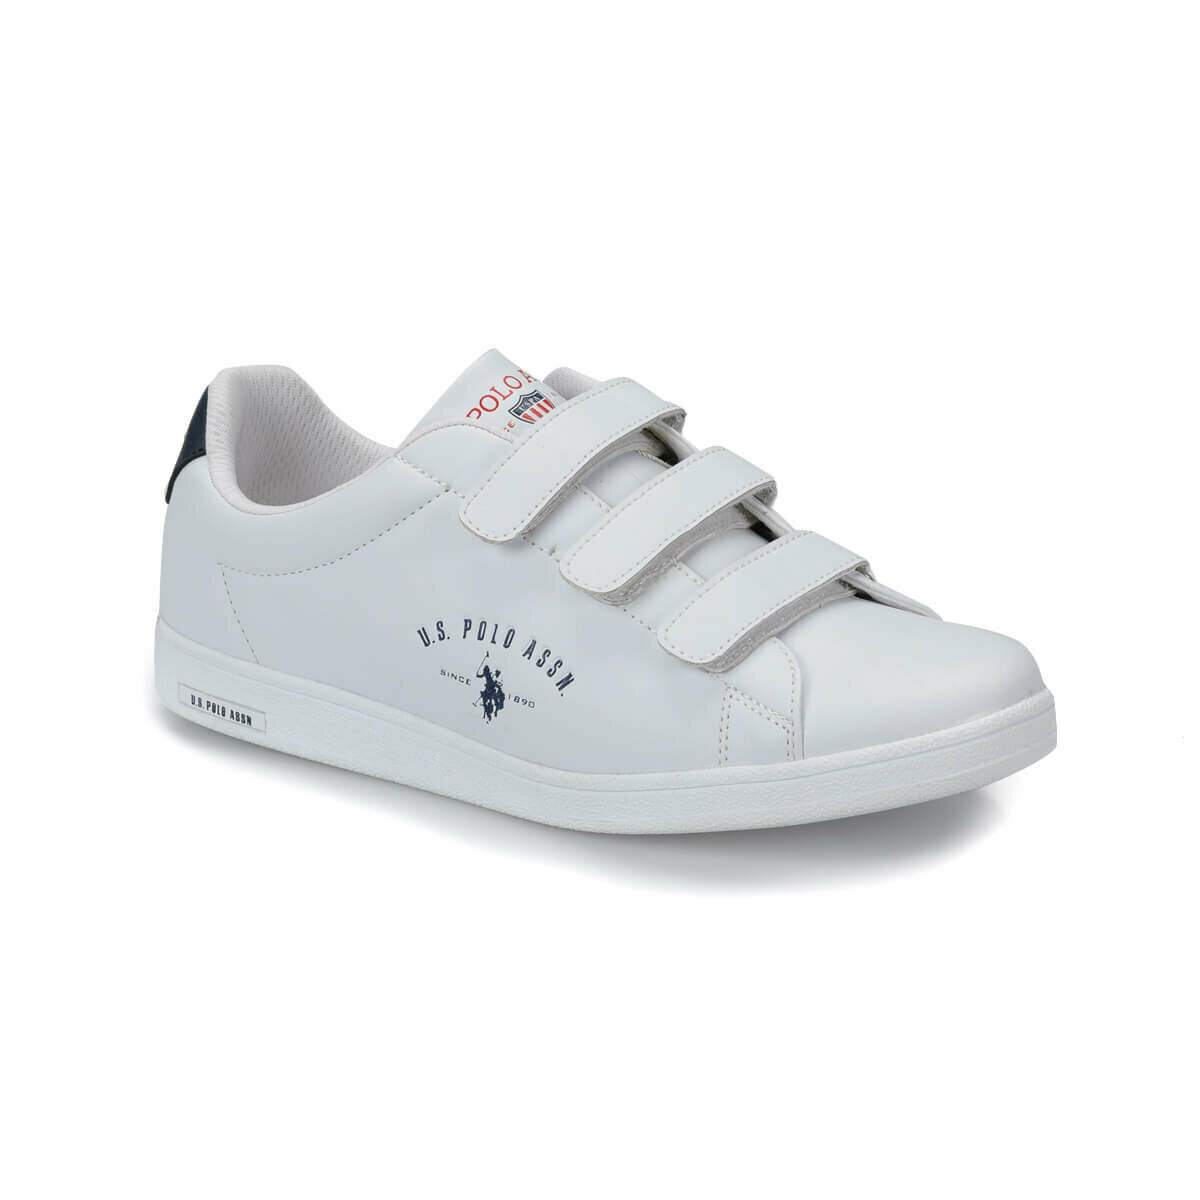 FLO White Men's Sneaker Shoes Hook & Loop Fashion Casual Man Shoes U.S. POLO ASSN. SINGER